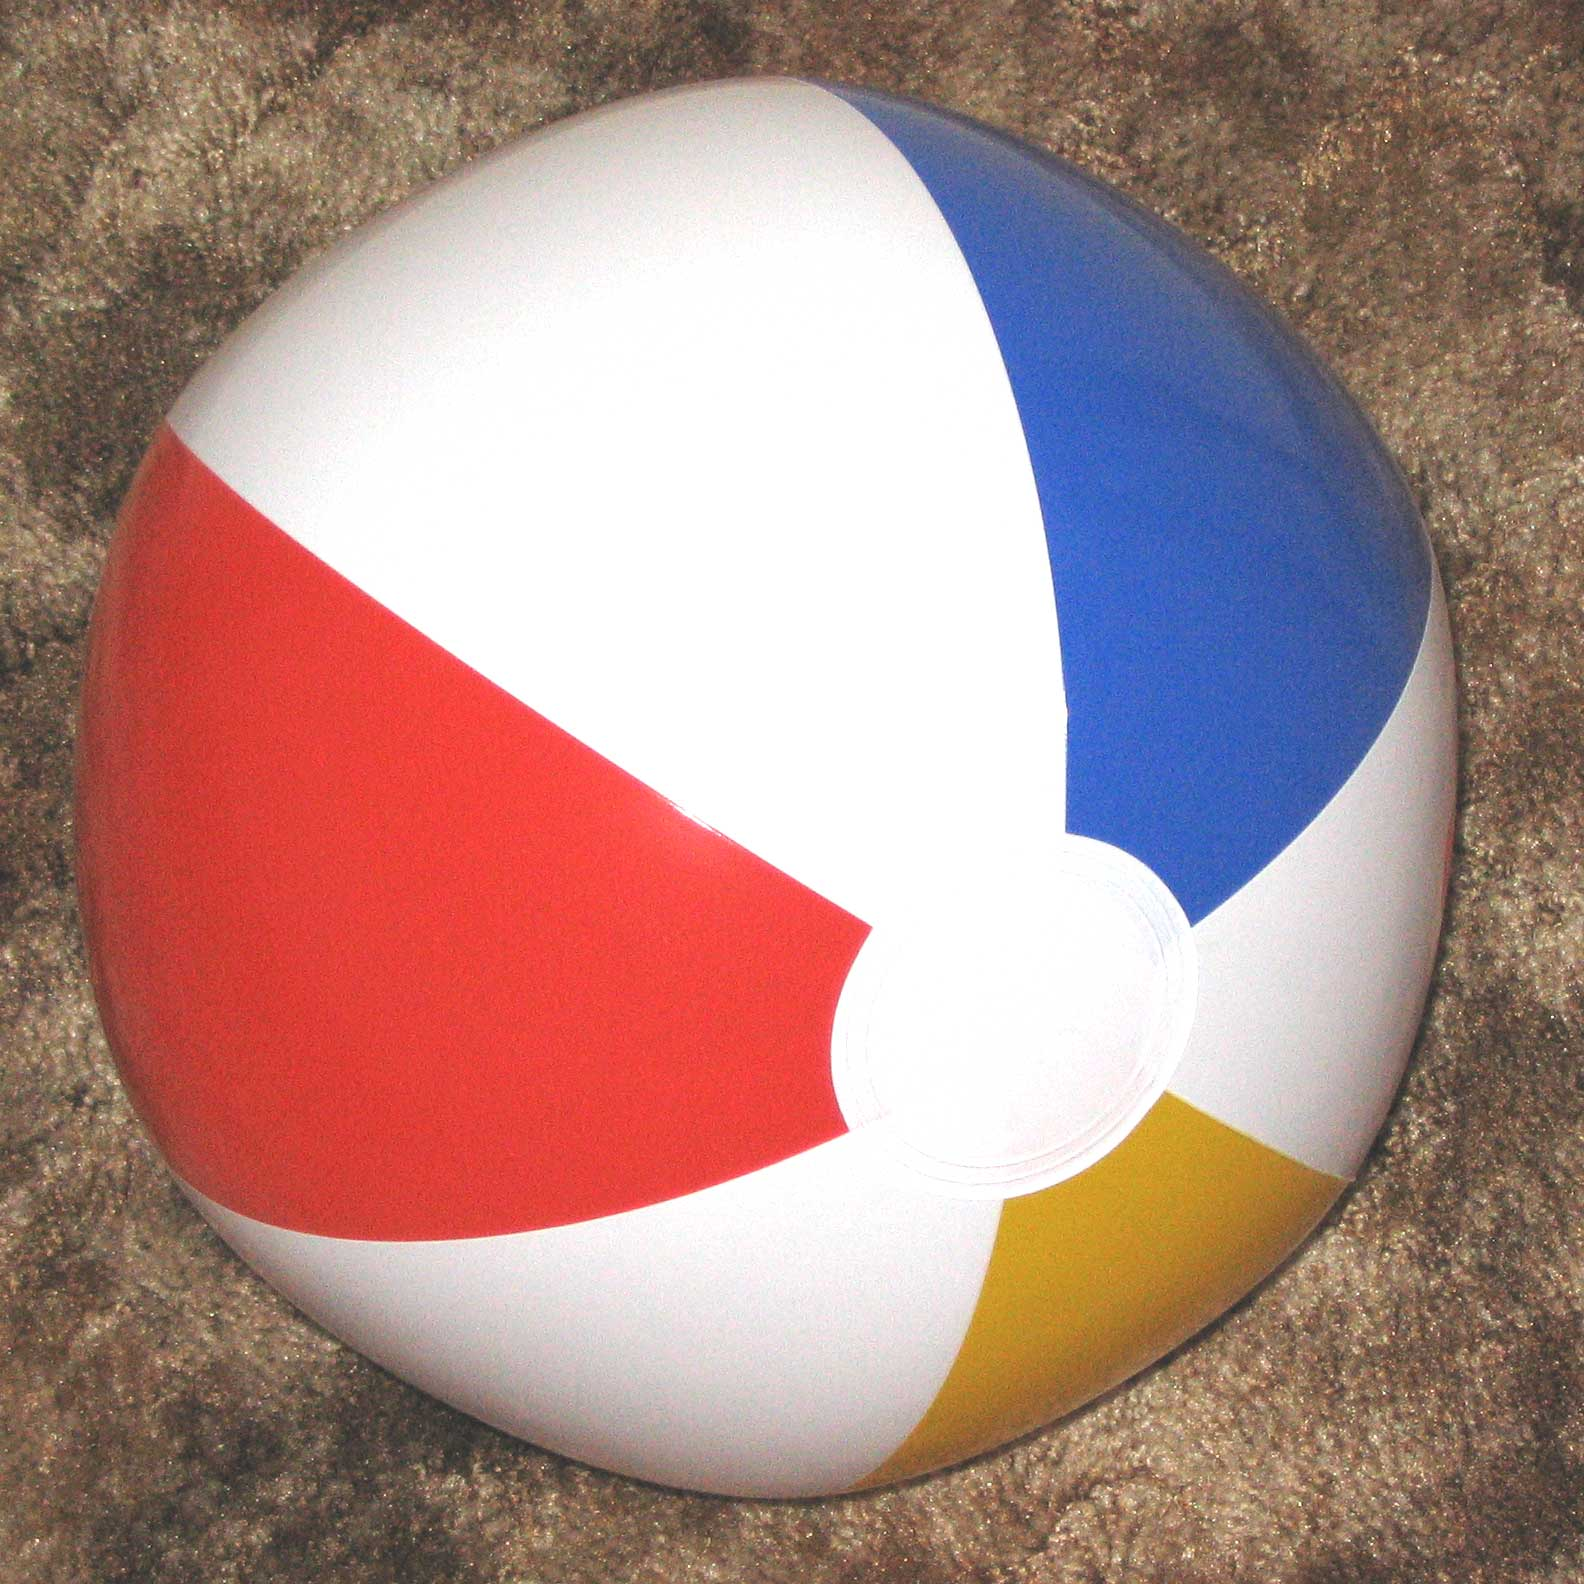 A beach ball with red, yellow, blue, and white stripes